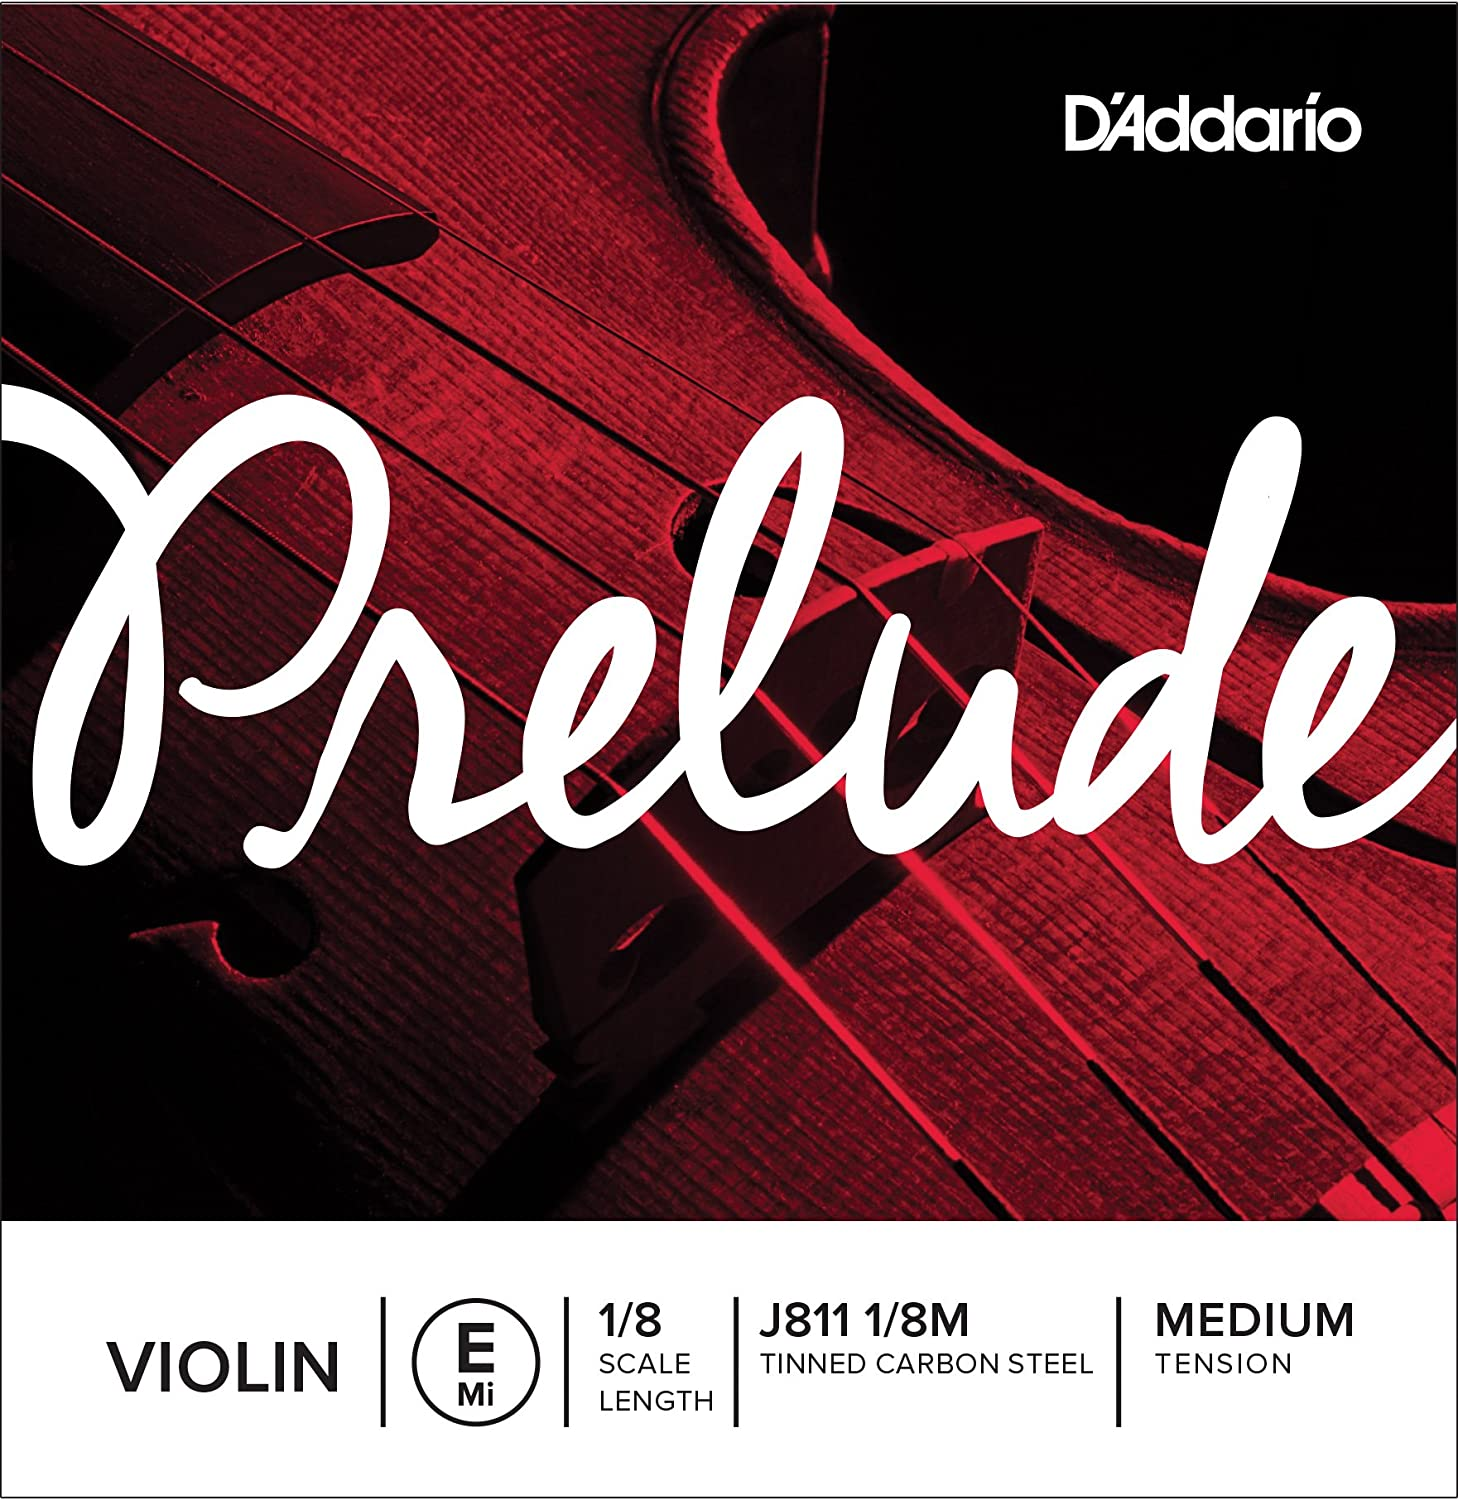 D'Addario Prelude Violin Single E String, 4/4 Scale, Light Tension D' Addario J811 4/4L